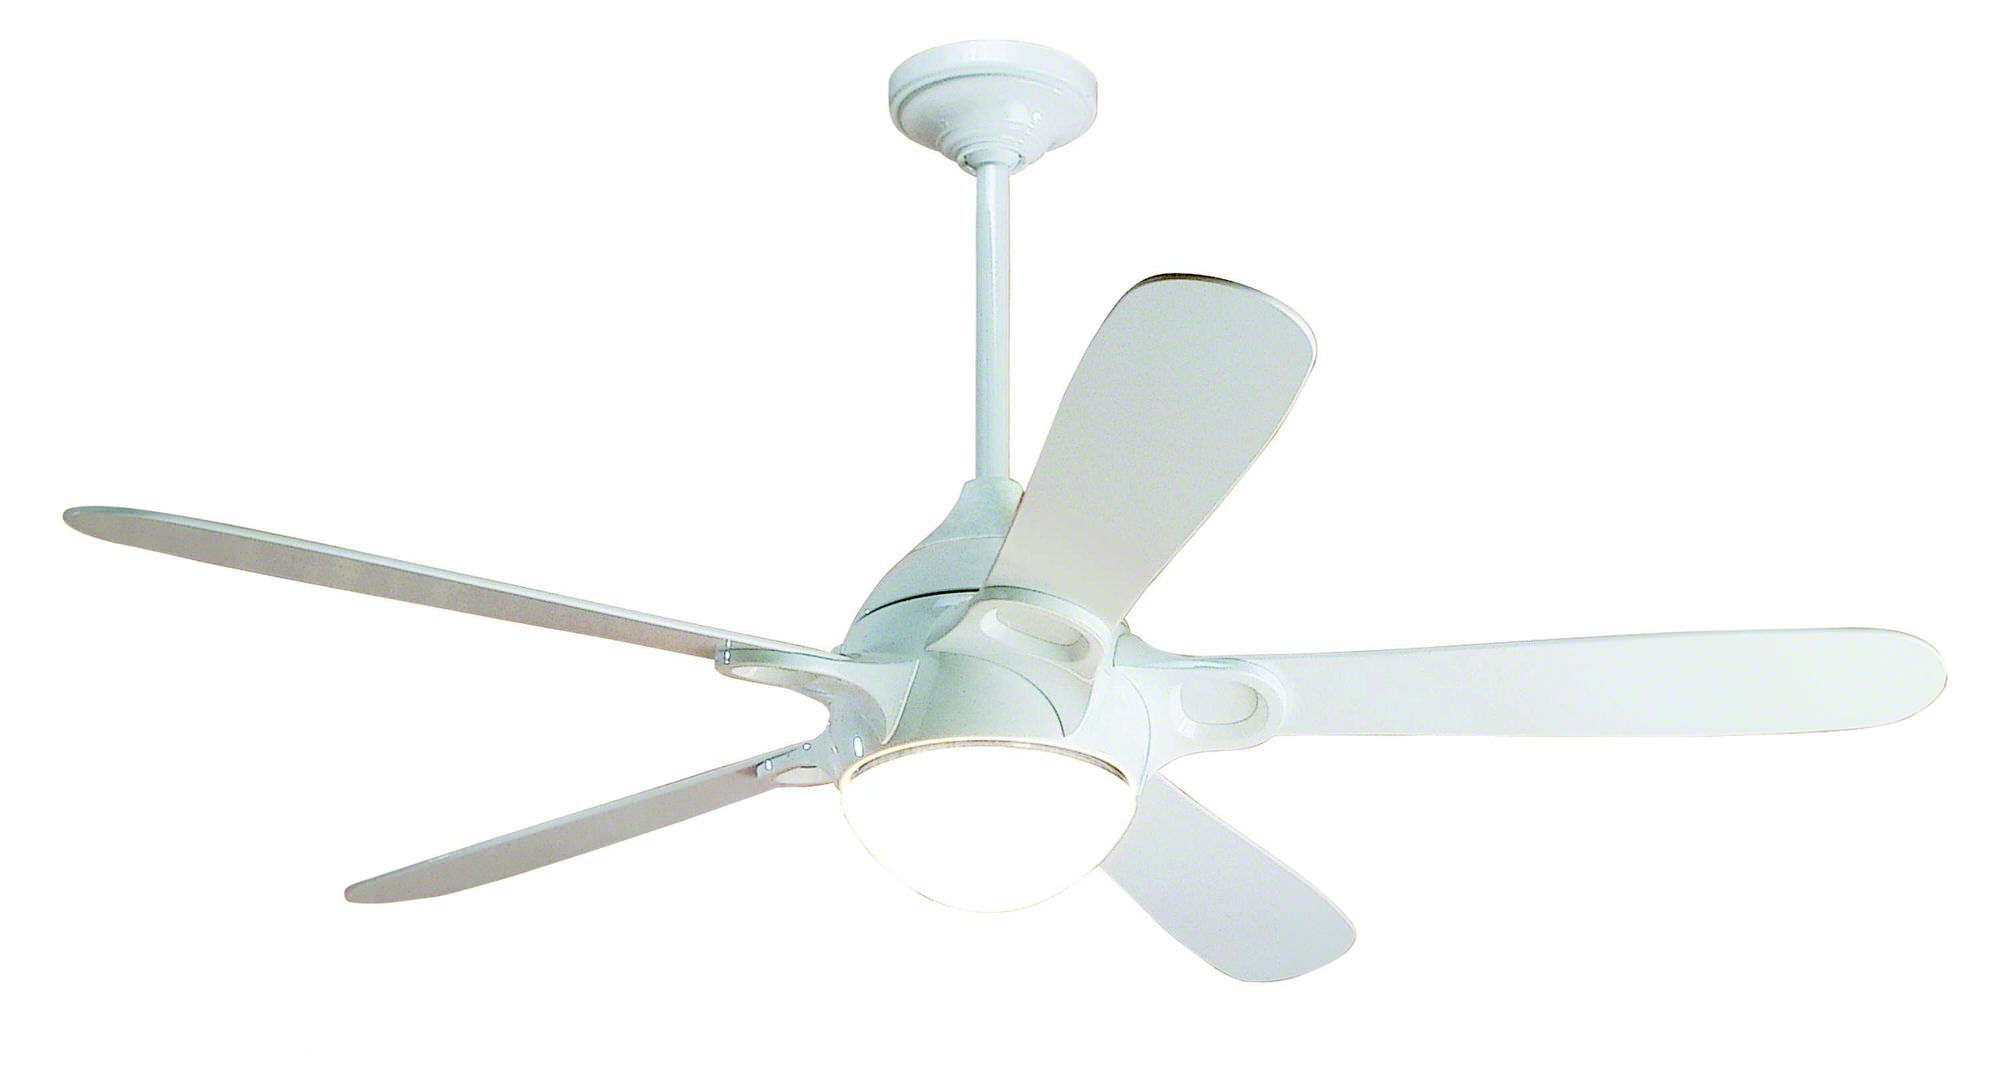 fan inch ceiling hunter fans light with low capitol crestford caicos kits profile blade fanimation breathtaking